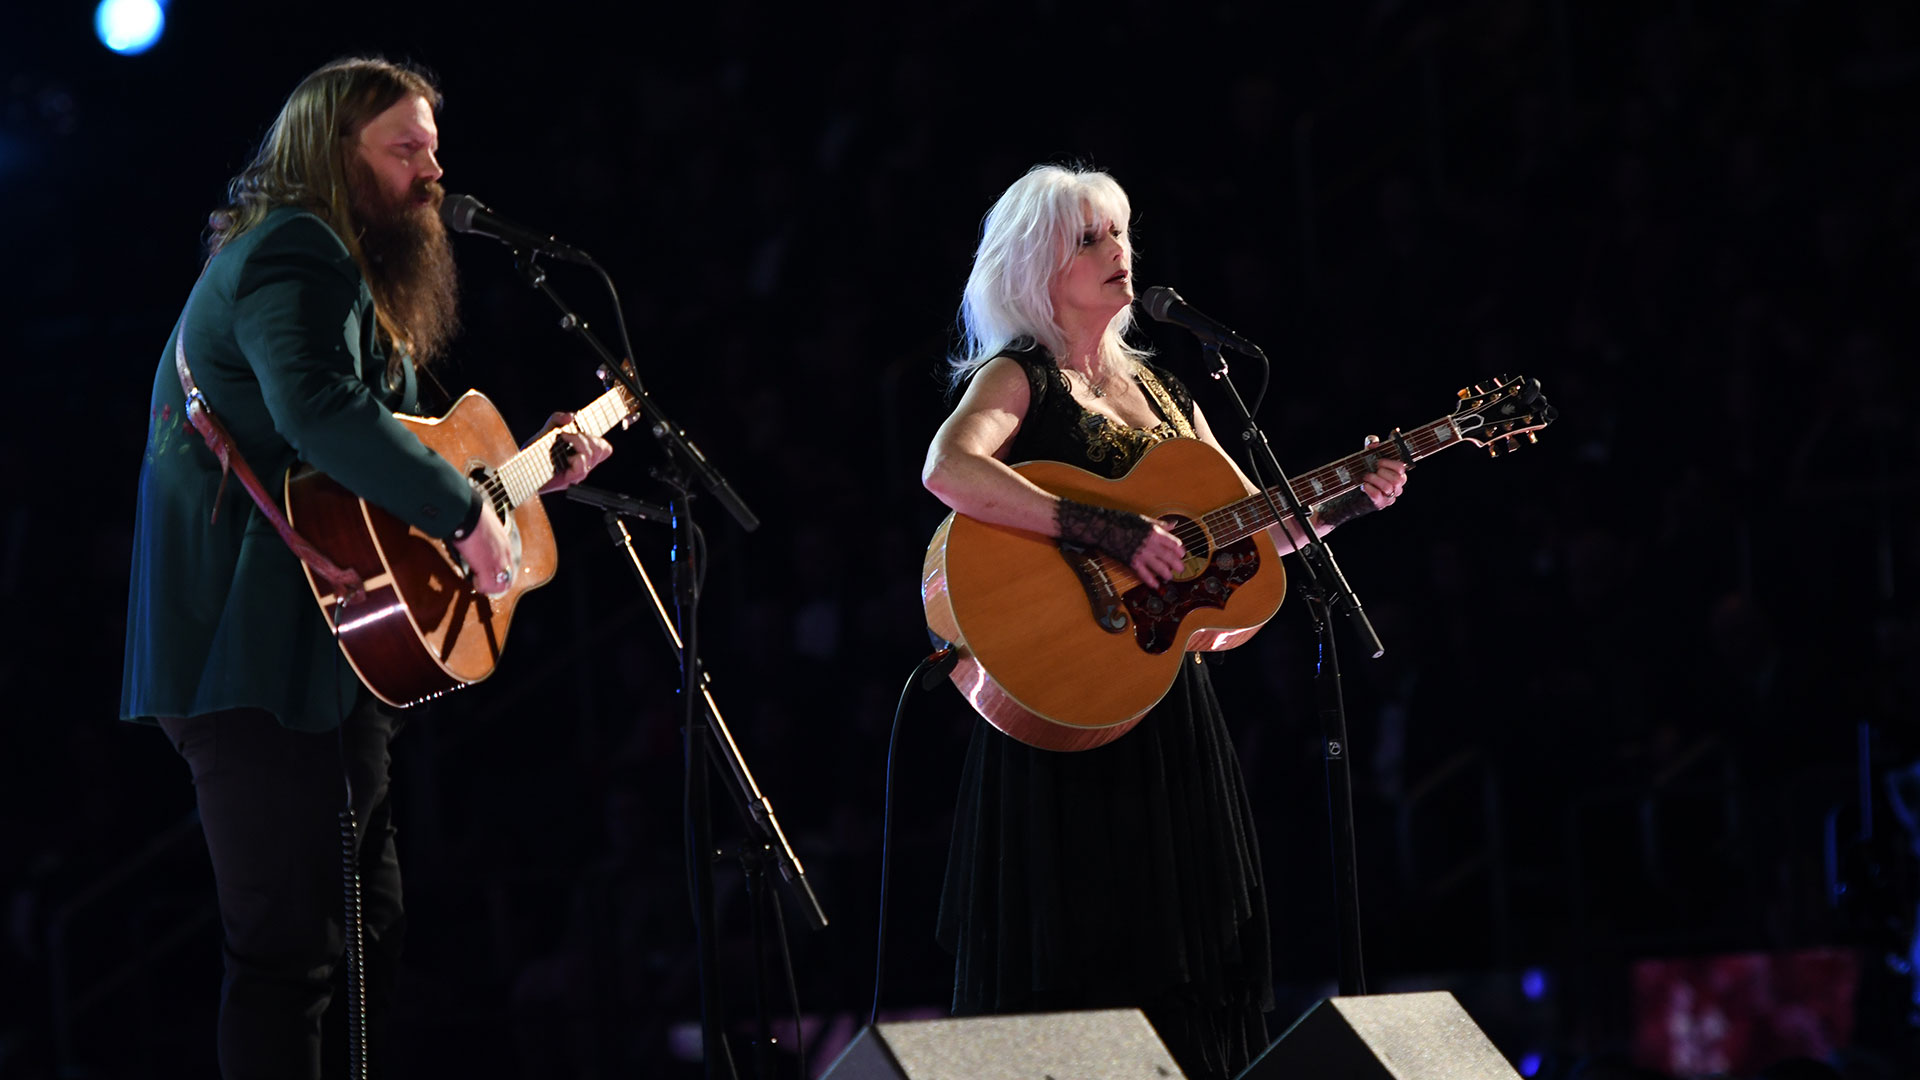 Emmylou Harris and Chris Stapleton pay tribute to the late rock legend Tom Petty with a beautiful acoustic cover of